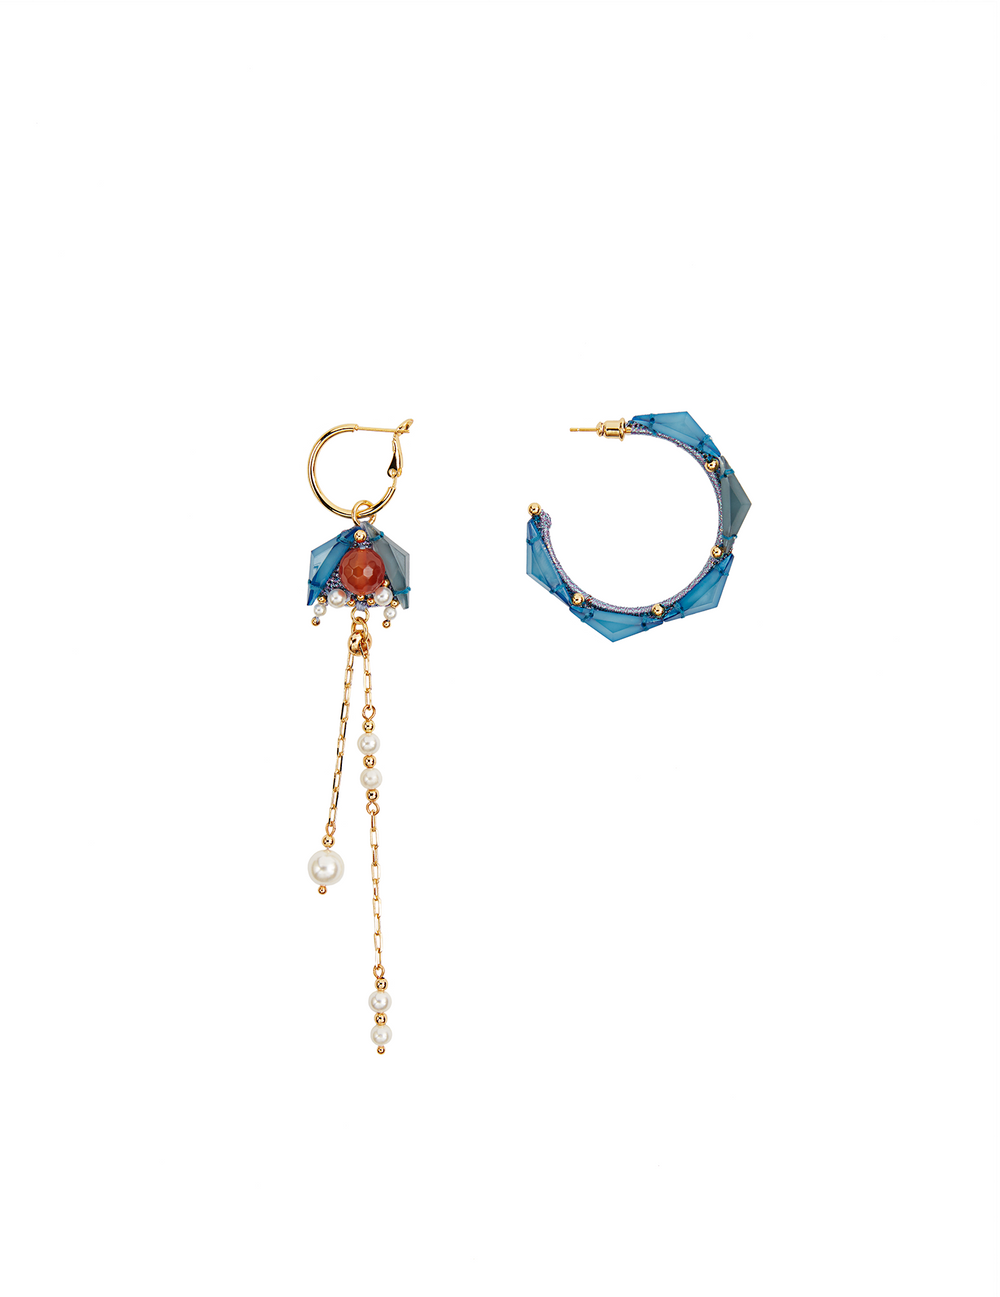 Camille Friend Earrings